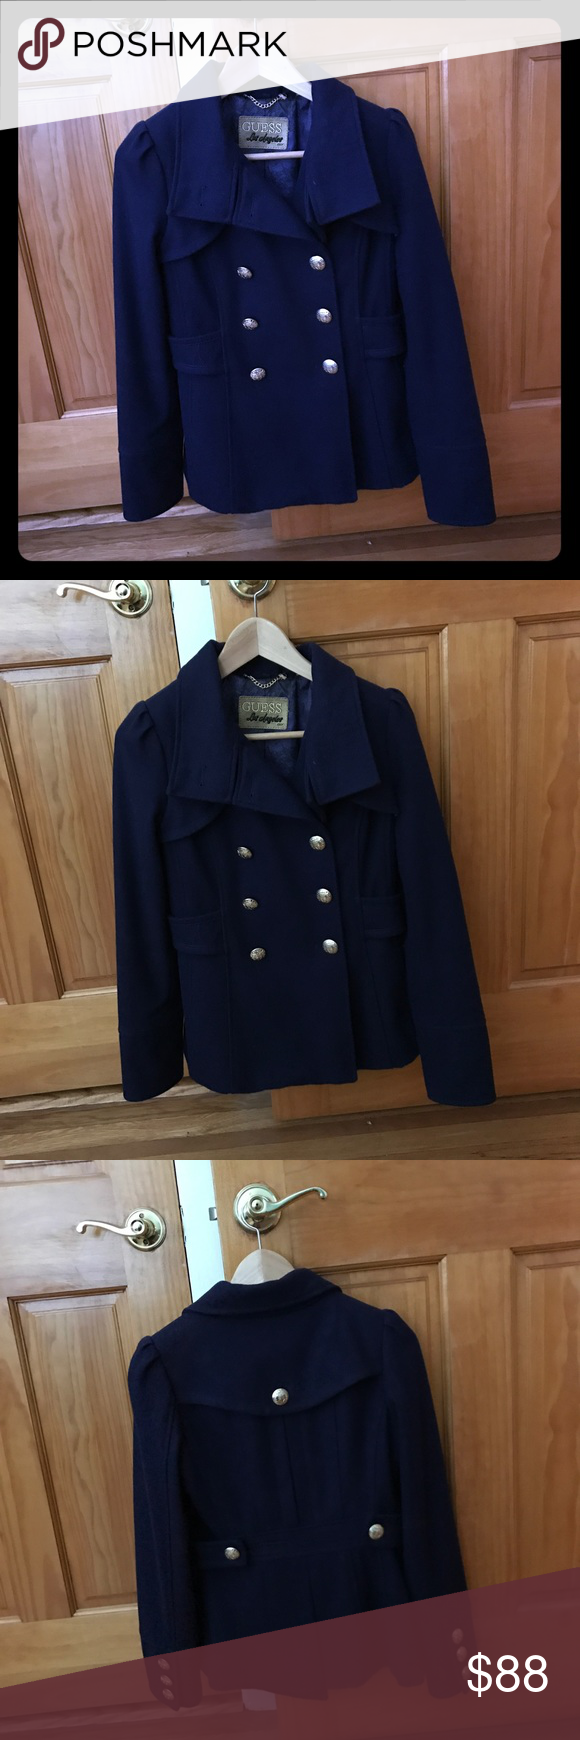 Guess blue peacoat Brand new without tag. Guess Jackets & Coats Pea Coats